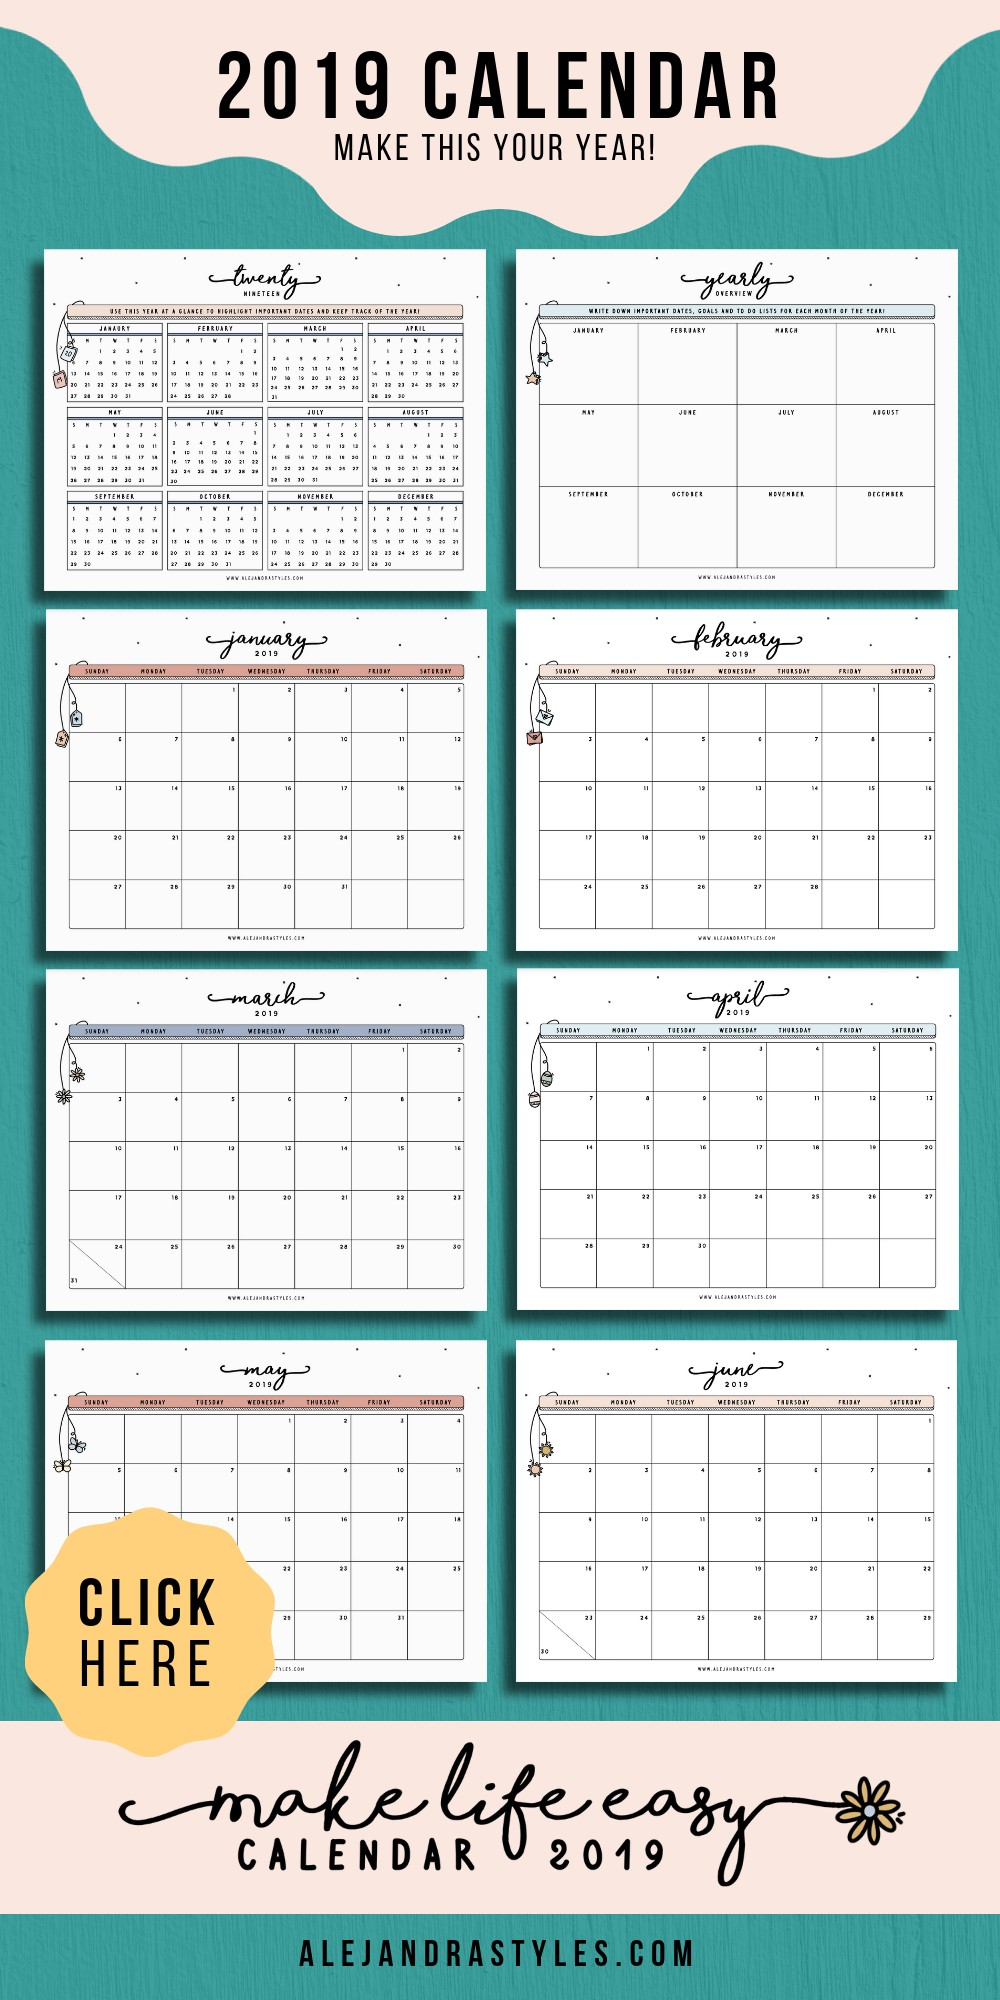 Make Life Easy Calendar 2019 This is a fun printable calendar that includes a yearly overview to help you visualize your goals and plans for the year